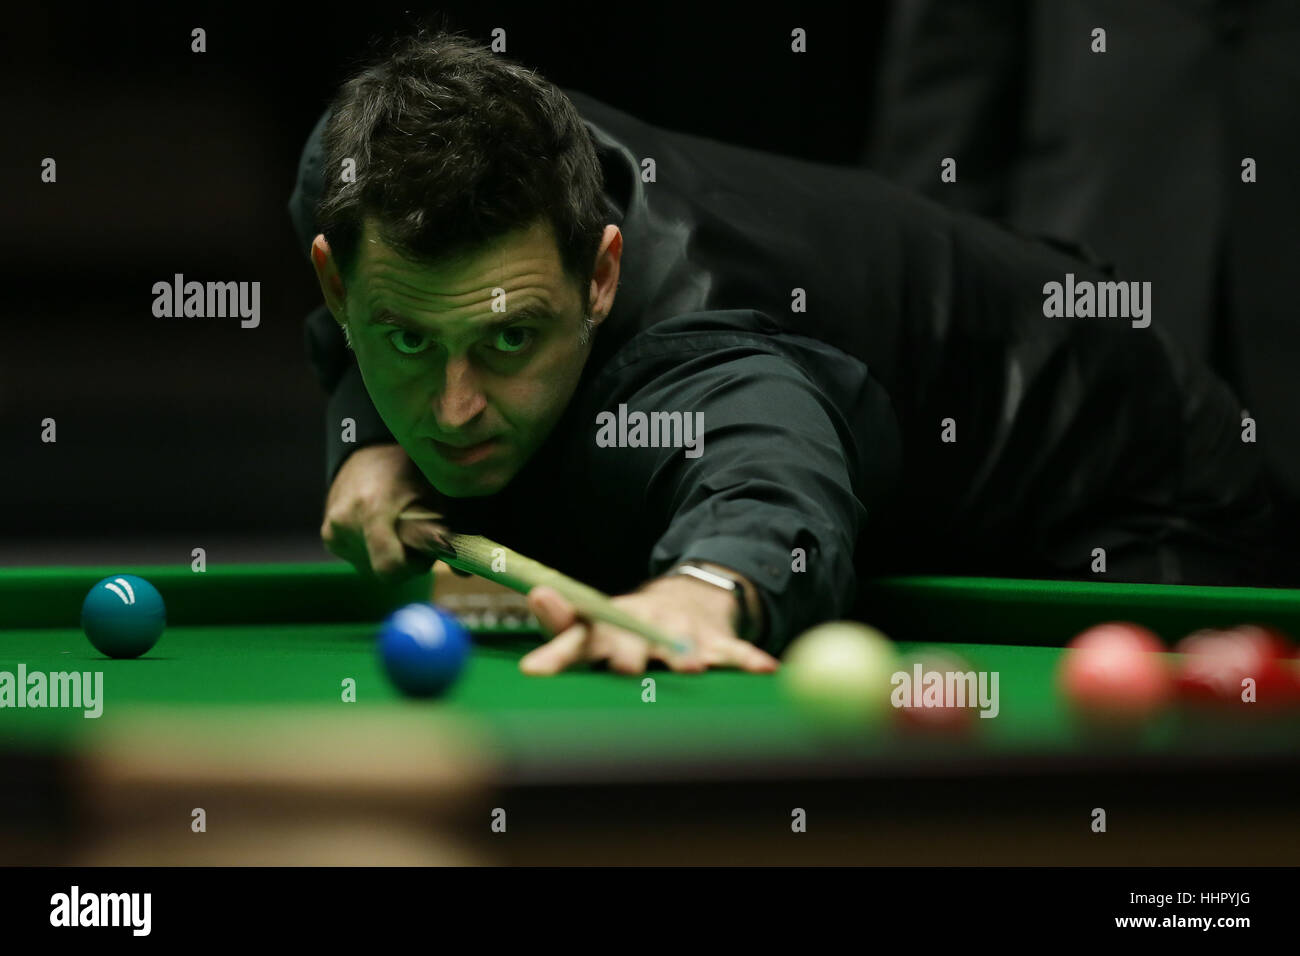 Londres, Royaume-Uni. 19 Jan, 2017. Ronnie O'Sullivan, de l'Angleterre frappe la balle au cours de match Photo Stock